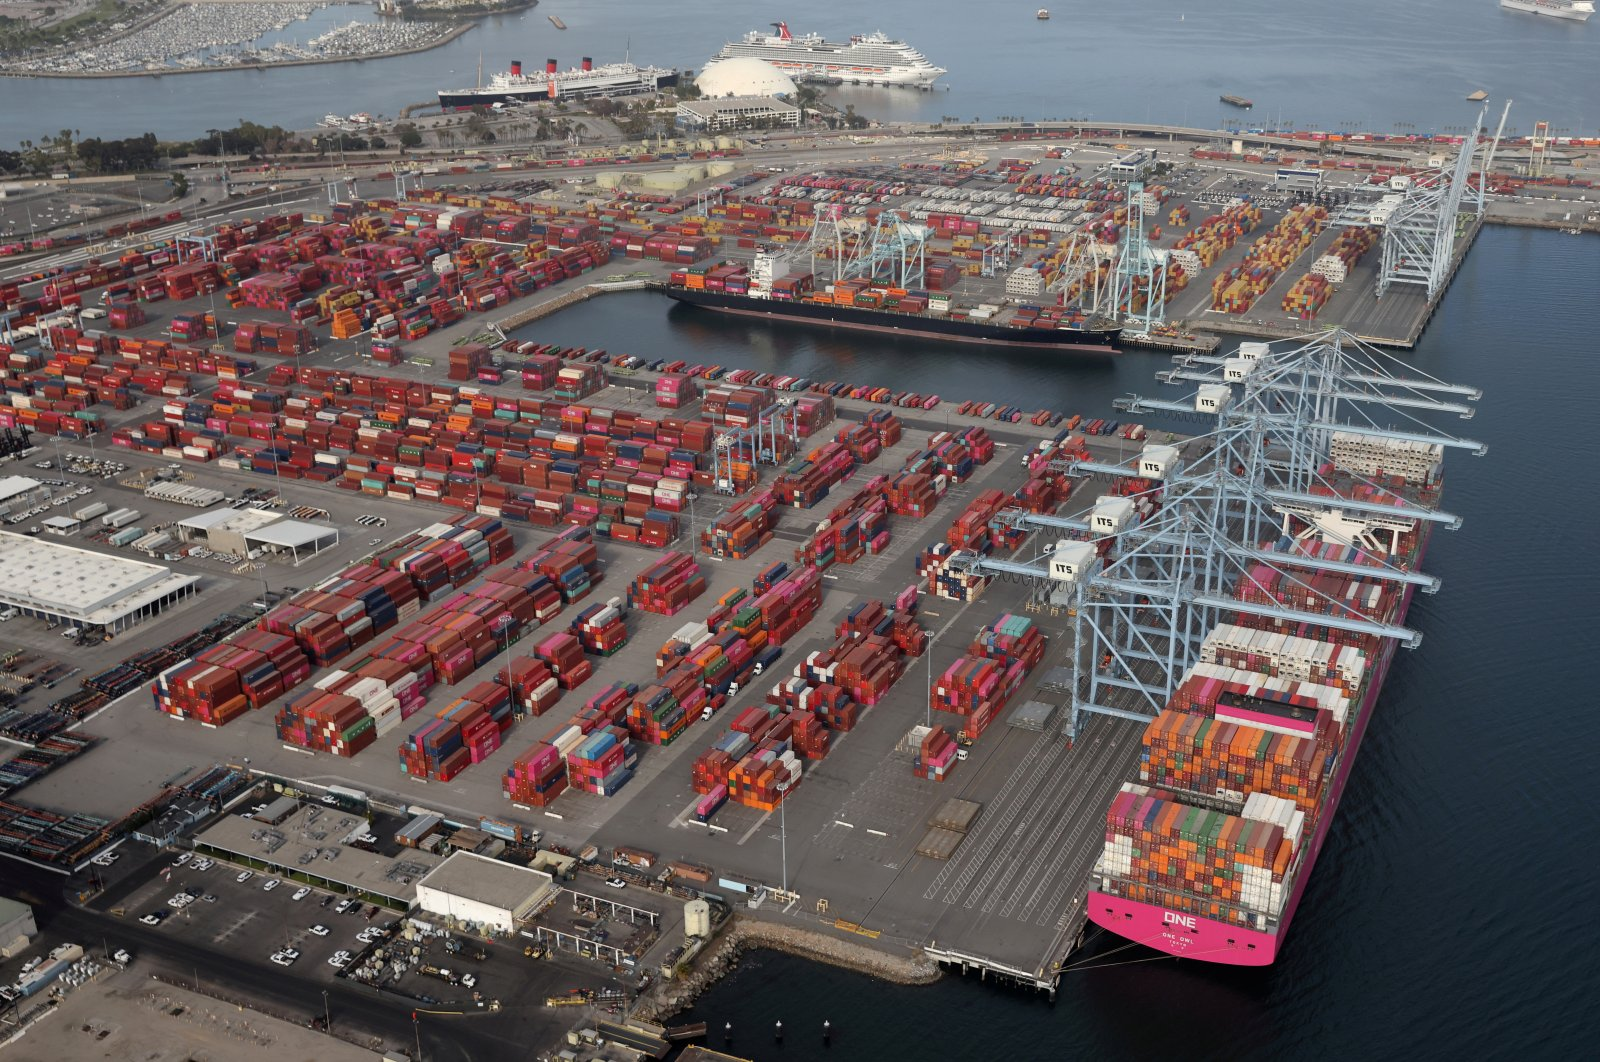 Shipping containers are unloaded from ships at a container terminal at the Port of Long Beach-Port of Los Angeles complex, in Los Angeles, California, U.S., April 7, 2021. (Reuters Photo)